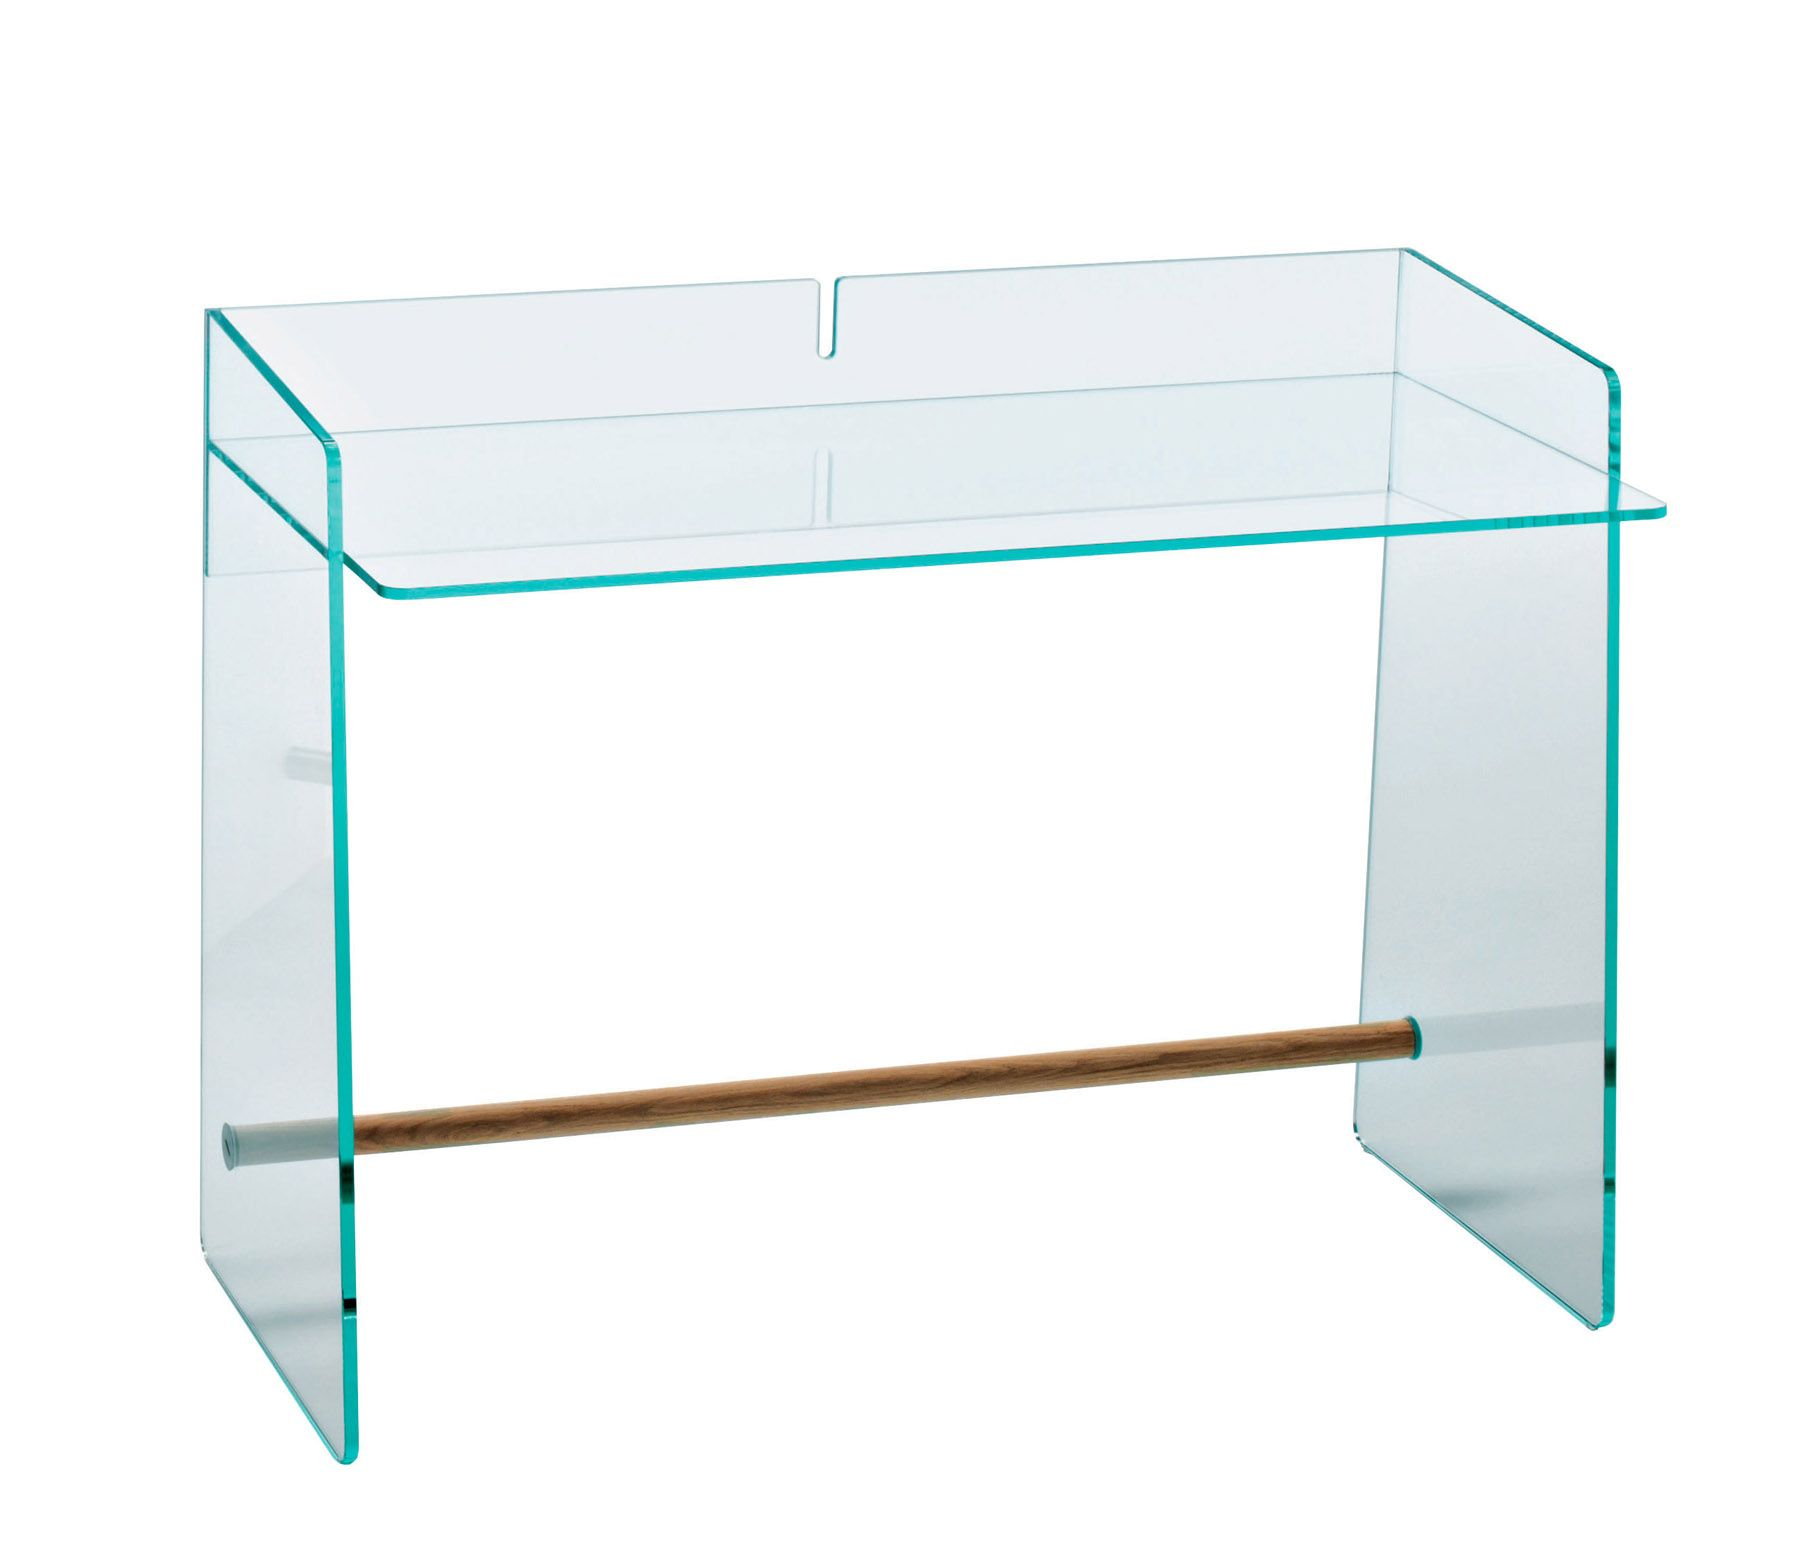 Jasper Morrison Writing desk in transparent extralight glass or in a special double-faced extralight acid-etched glass tempered and thermowelded. Available in two different sizes. The version in extralight acid-etched glass has the footrest bar in inox anodized aluminium, while the version in transparent extralight glass is available with the footrest bar in inox anodized aluminium …